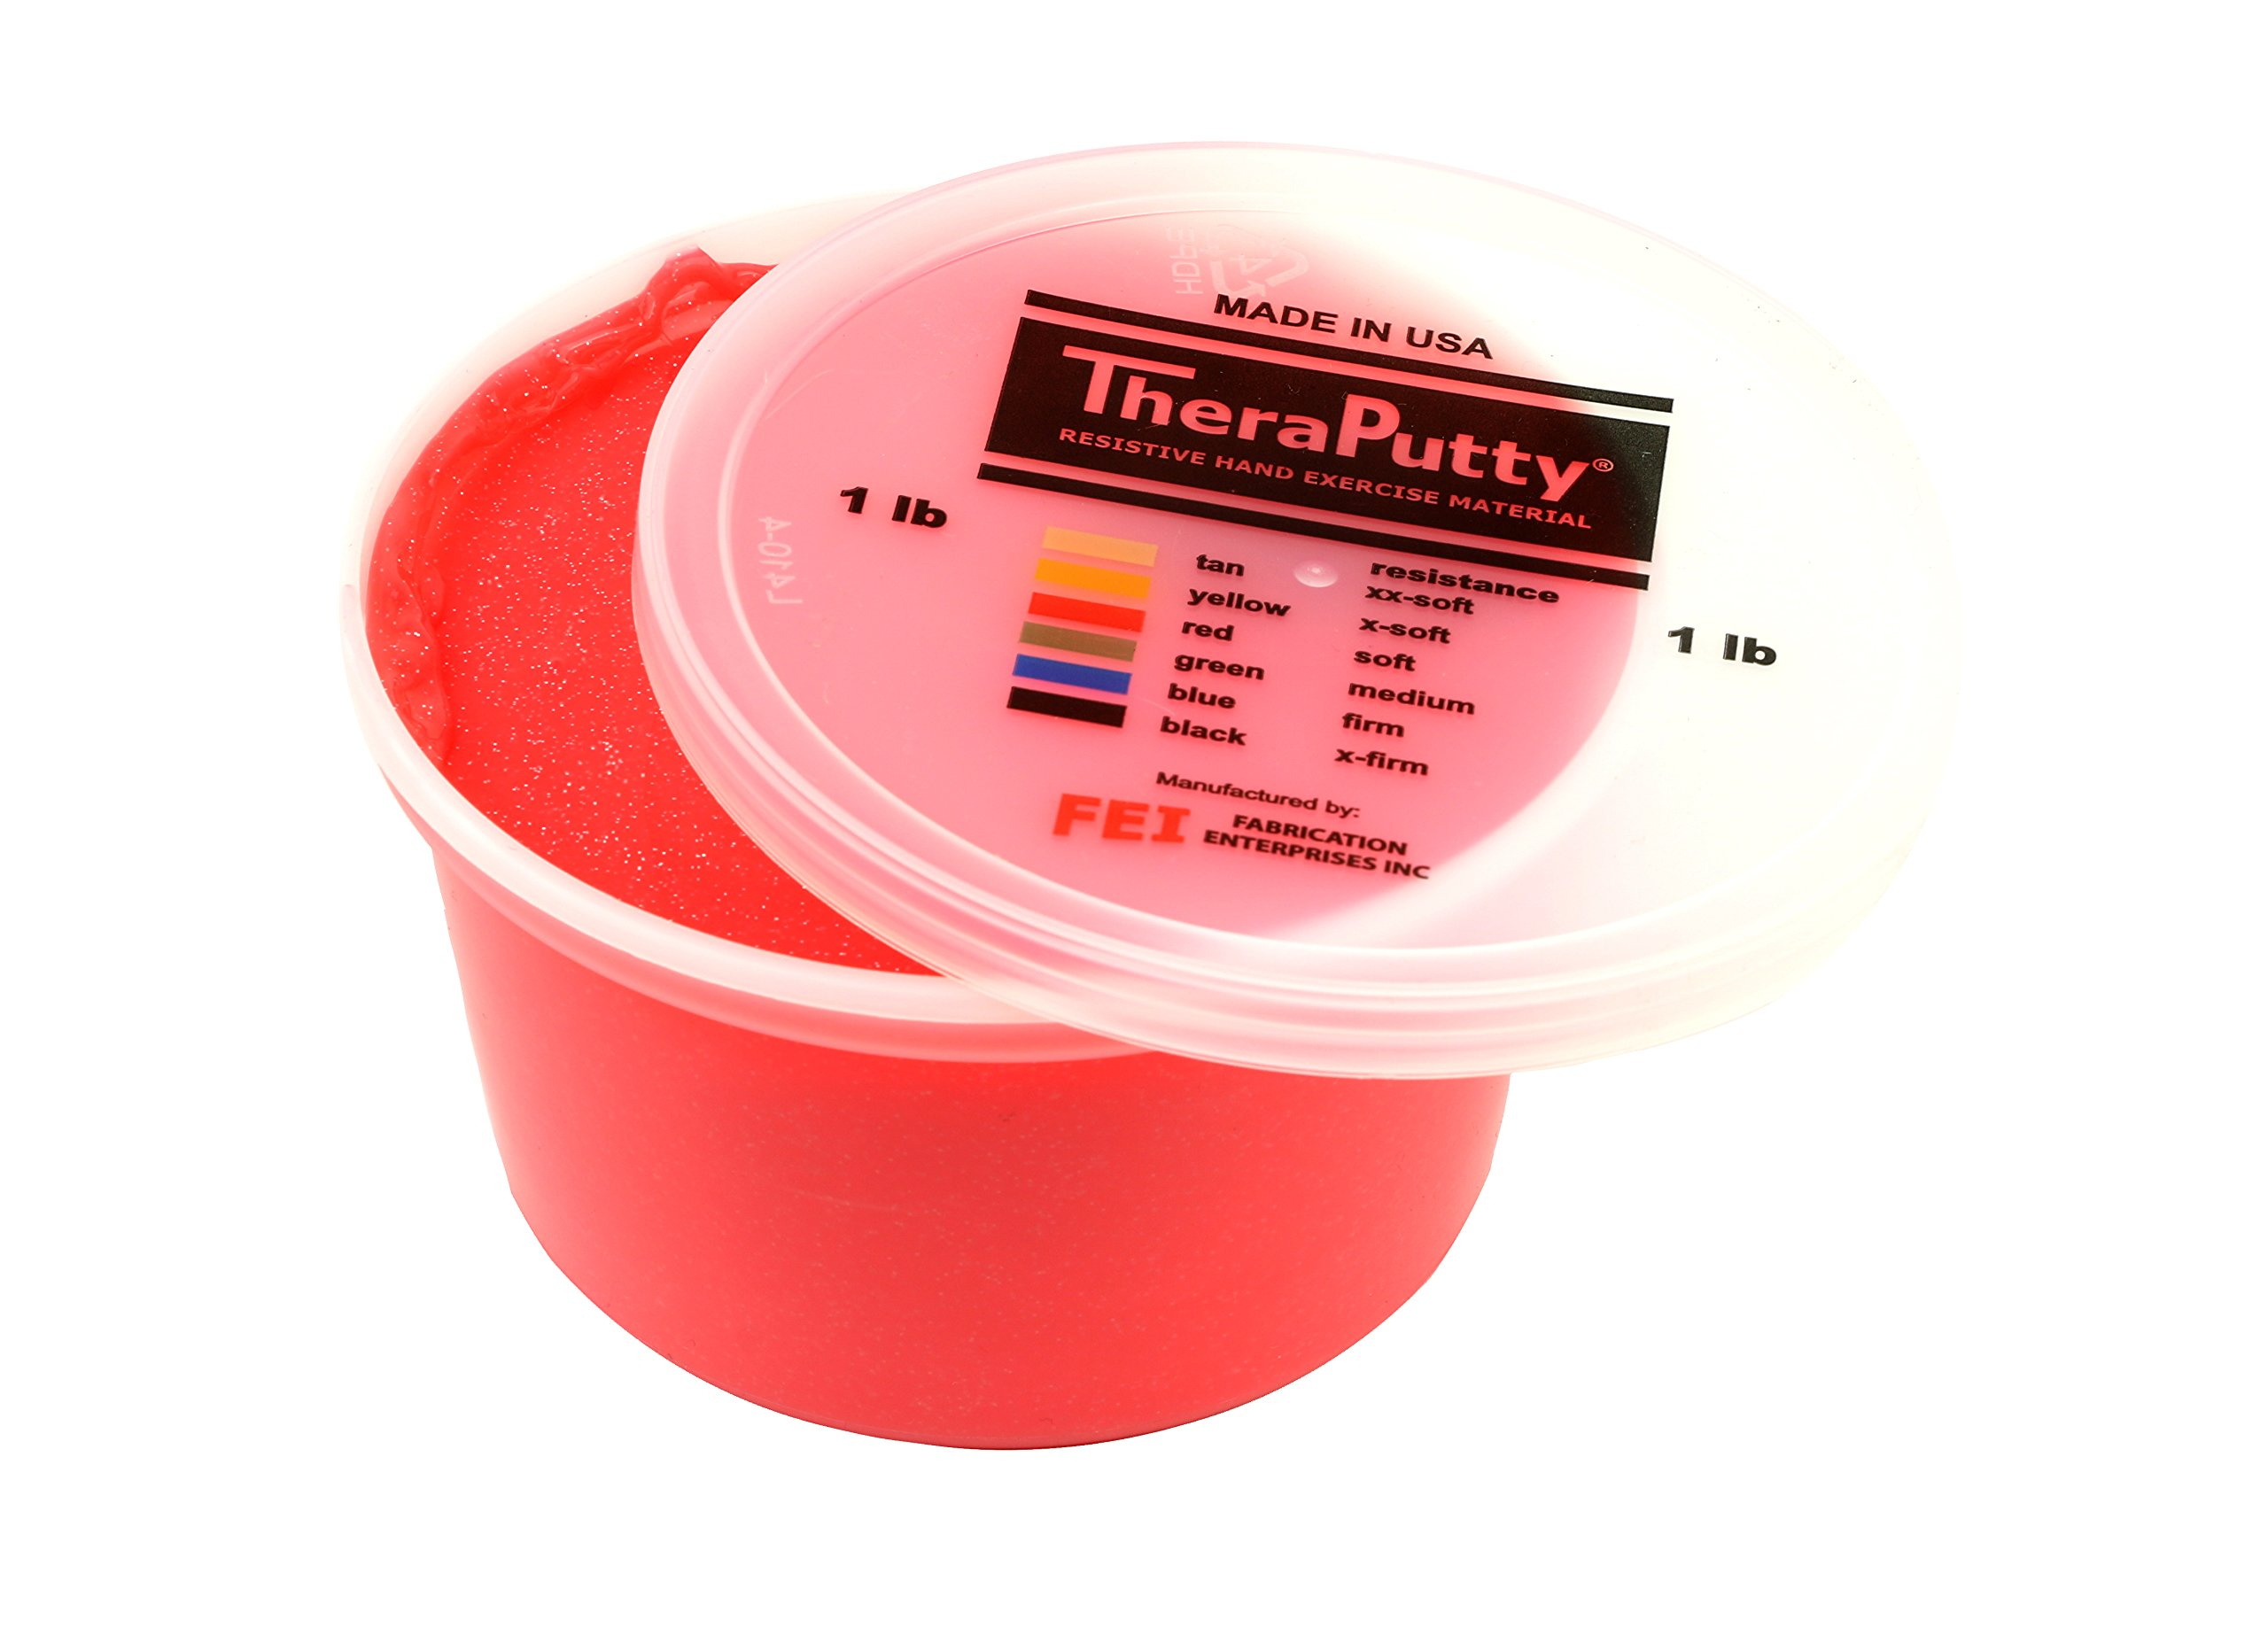 CanDo Sparkle Theraputty - 1 lb - Red - Soft by Cando (Image #1)